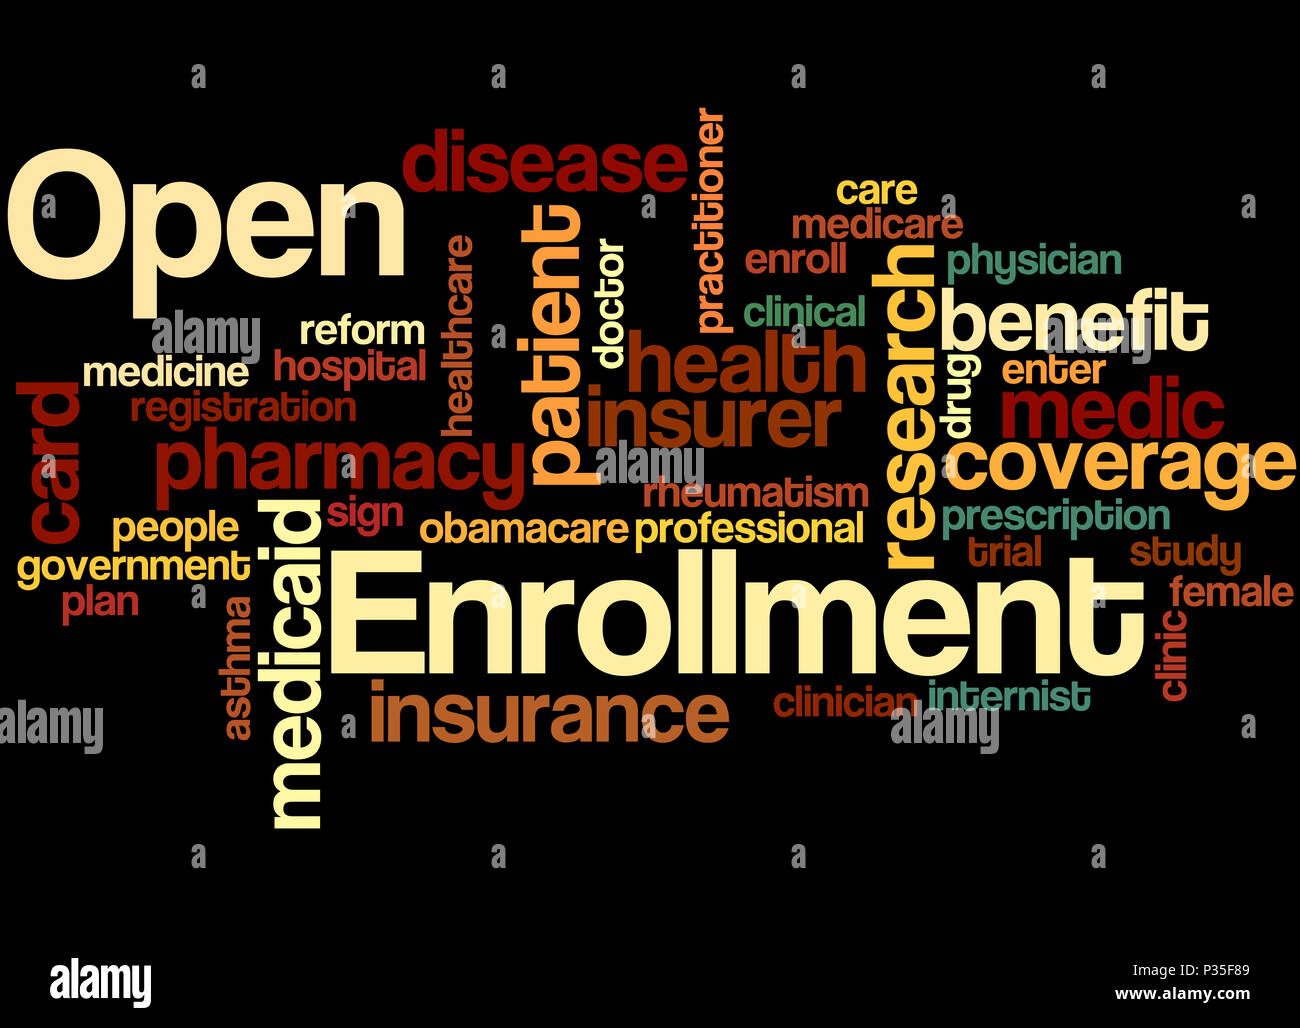 Open Enrollment, word cloud concept on black background. - Stock Image